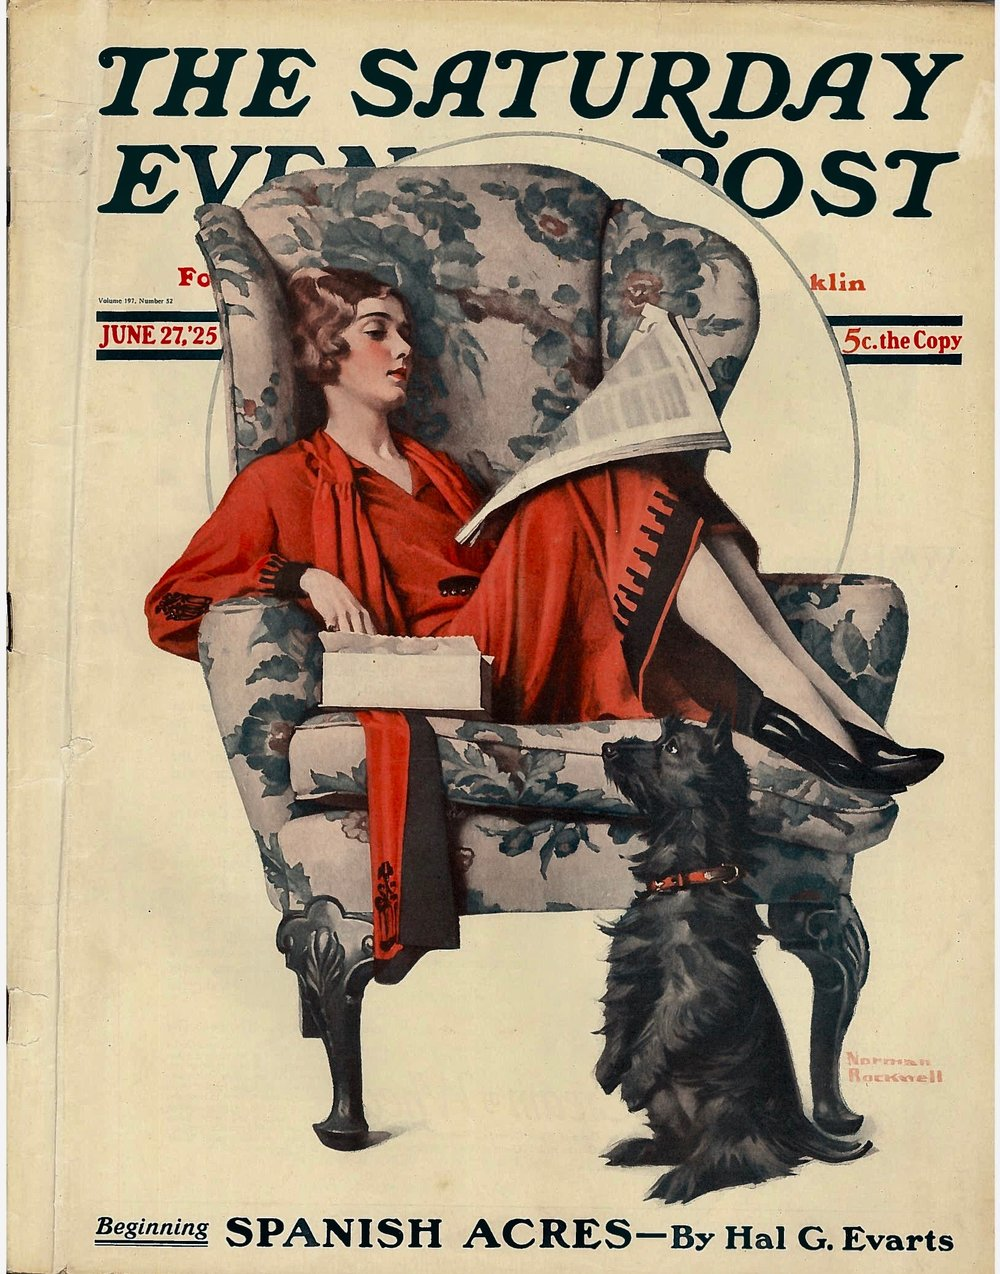 The cover to The Saturday Evening Post for June 27, 1925. After hunting for years for a copy, I finally acquired one last fall. Needless to say, it's become a treasure in my little collection.